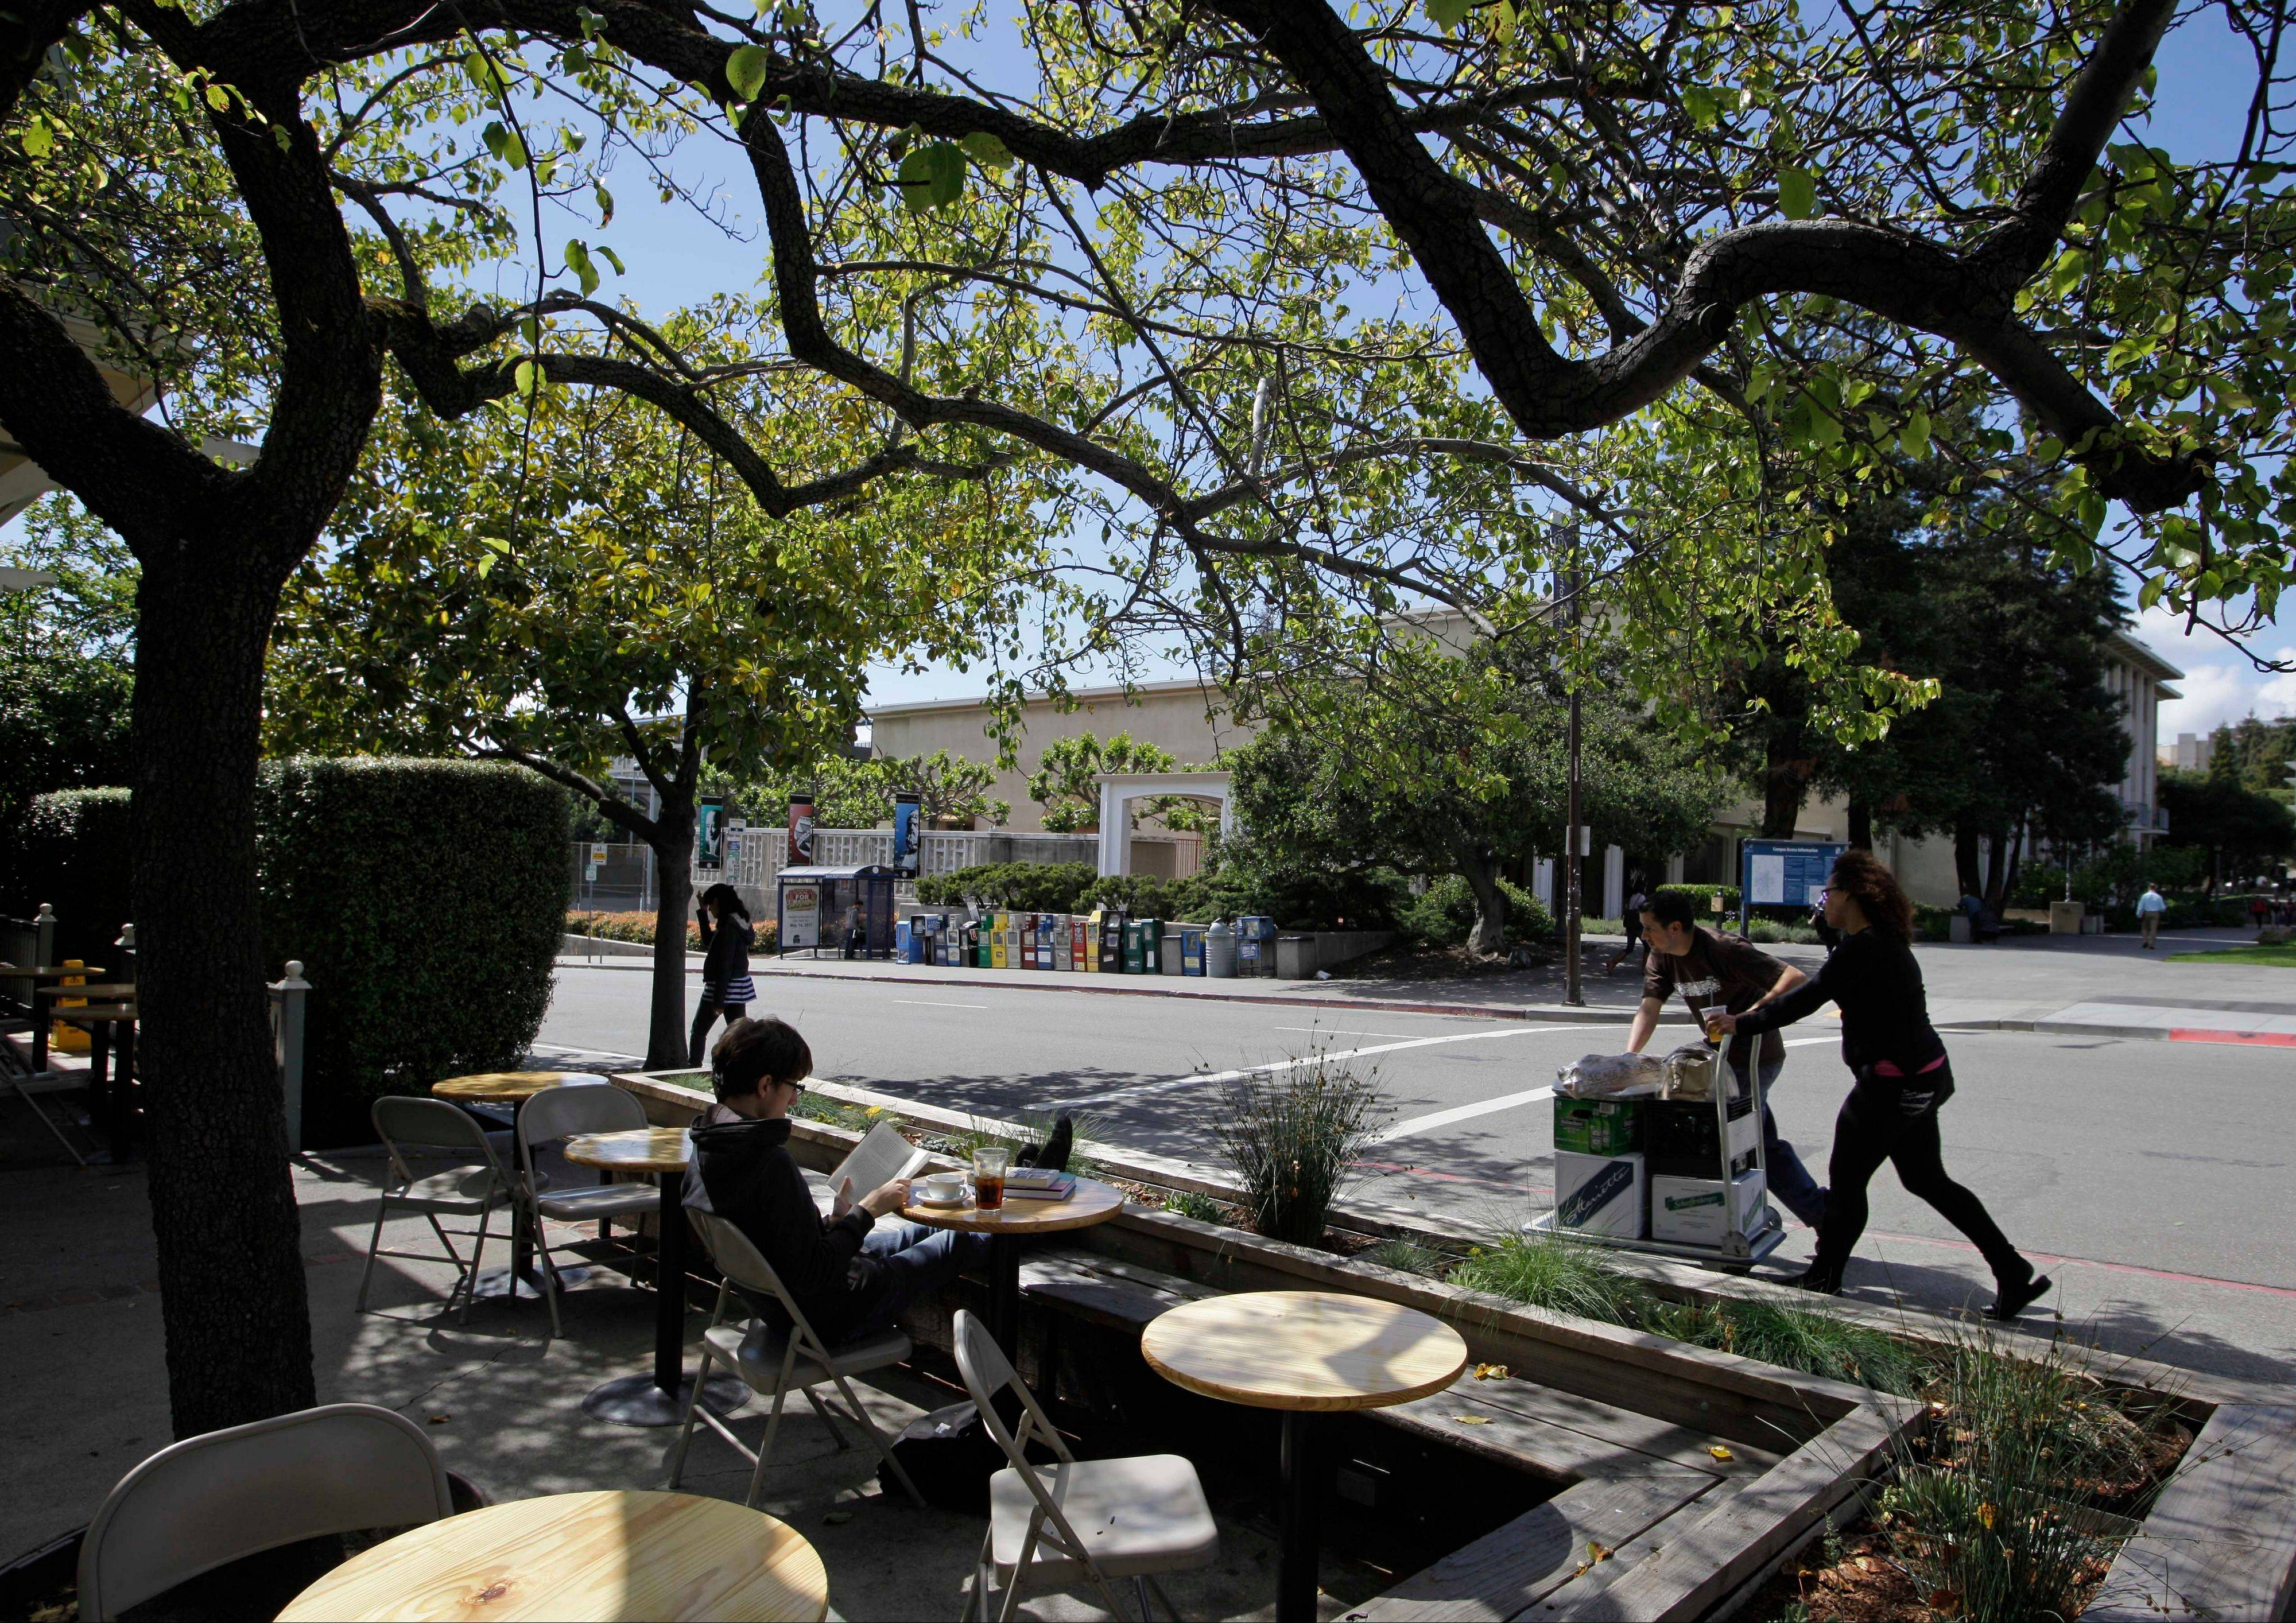 The Caffe Strada is a hangout in the liberal college town of Berkeley.